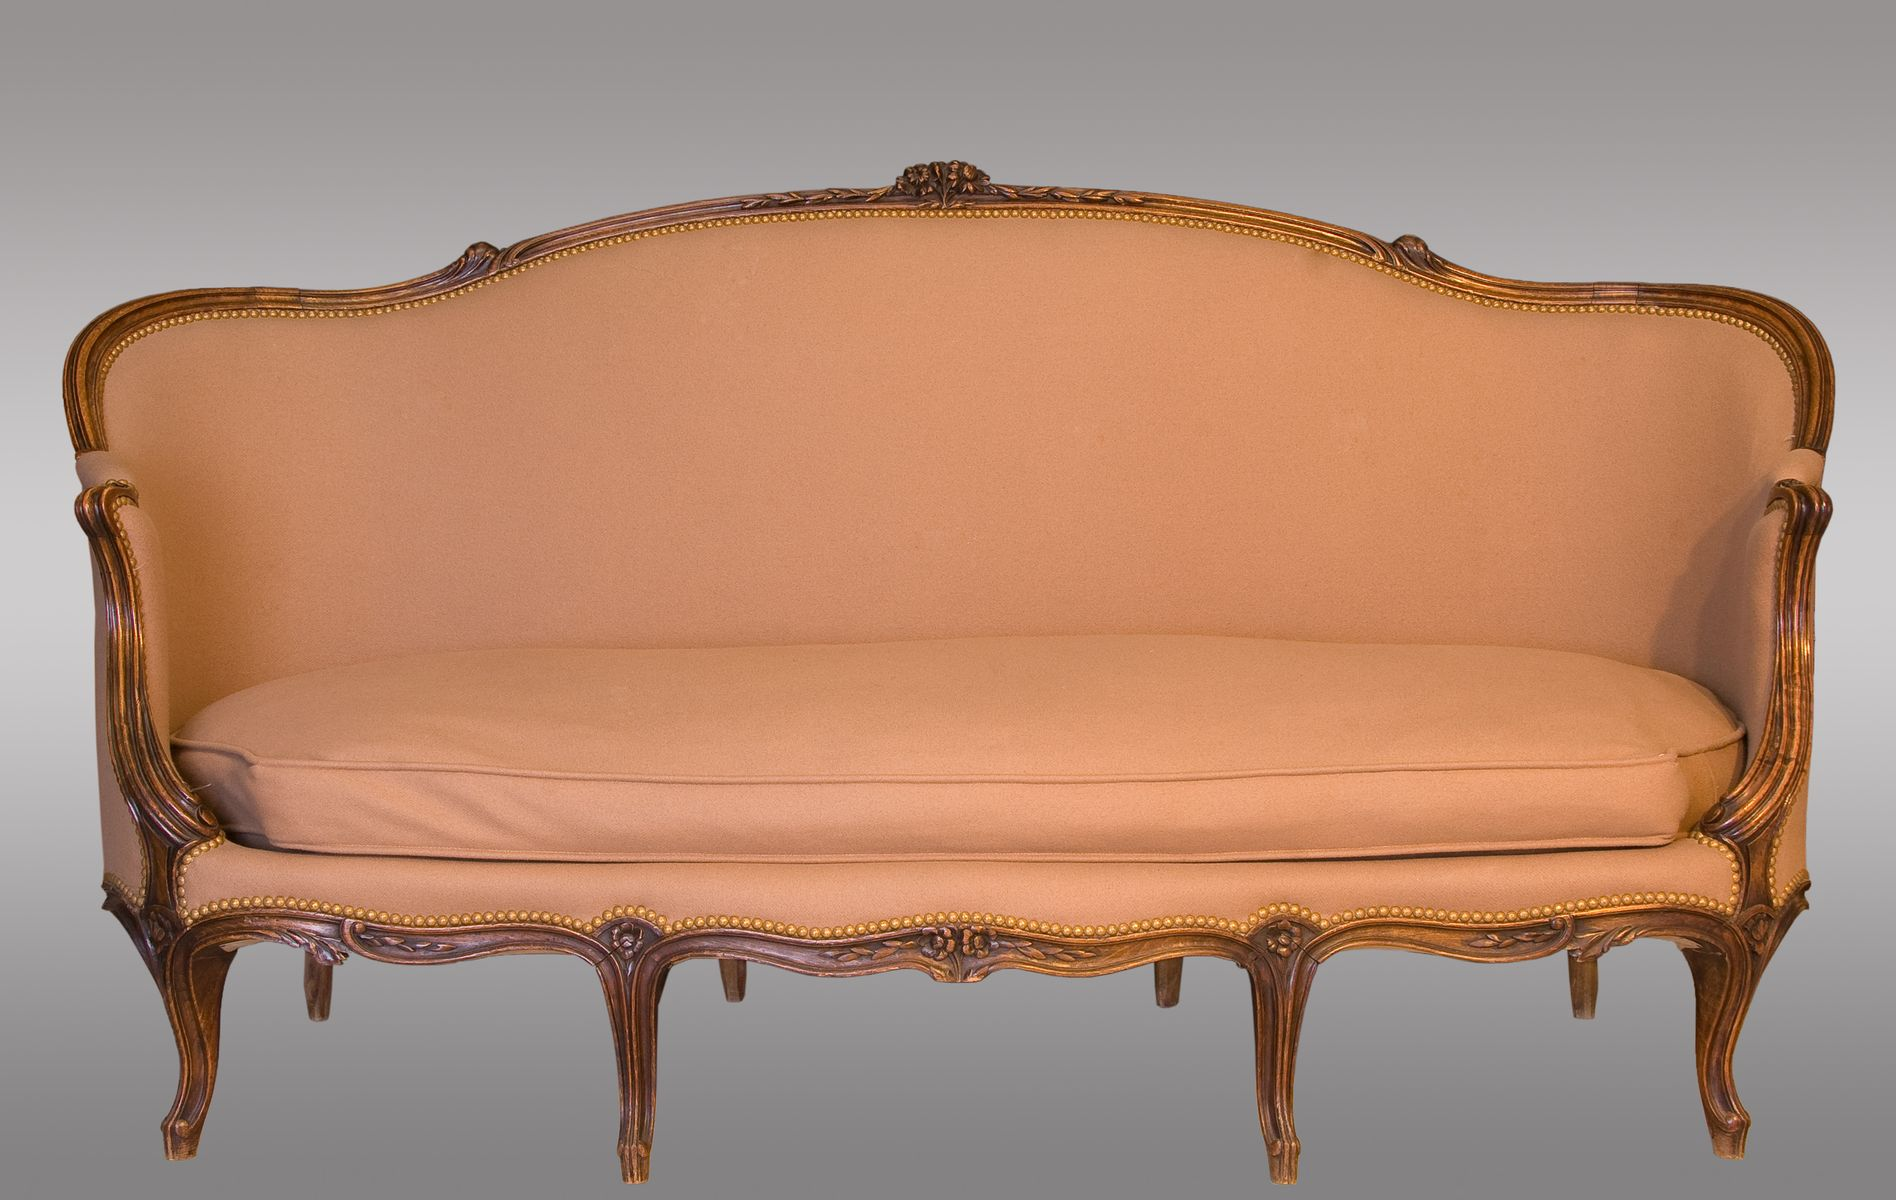 Antique french louis xv style canap for sale at pamono for Canape louis 15